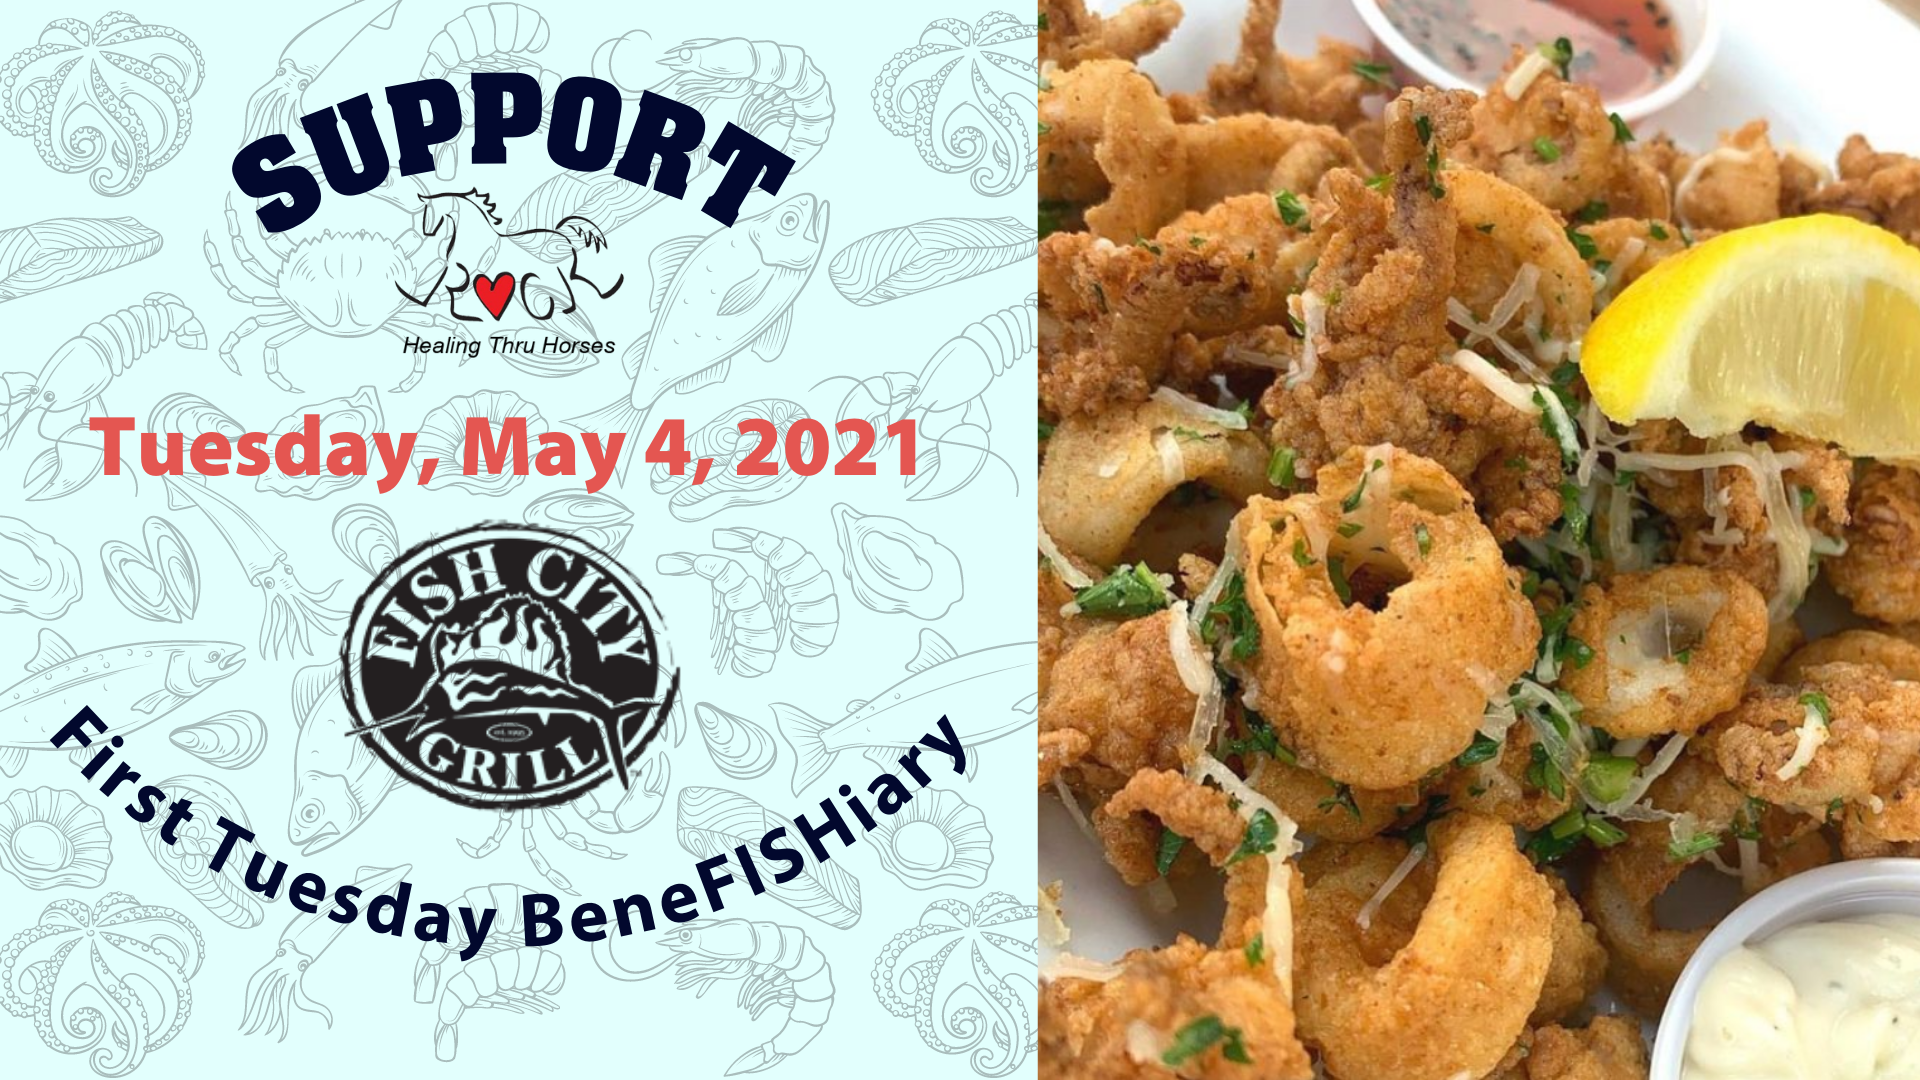 Support ROCK on Tuesday, May 4, 2021 at Fish City Grill